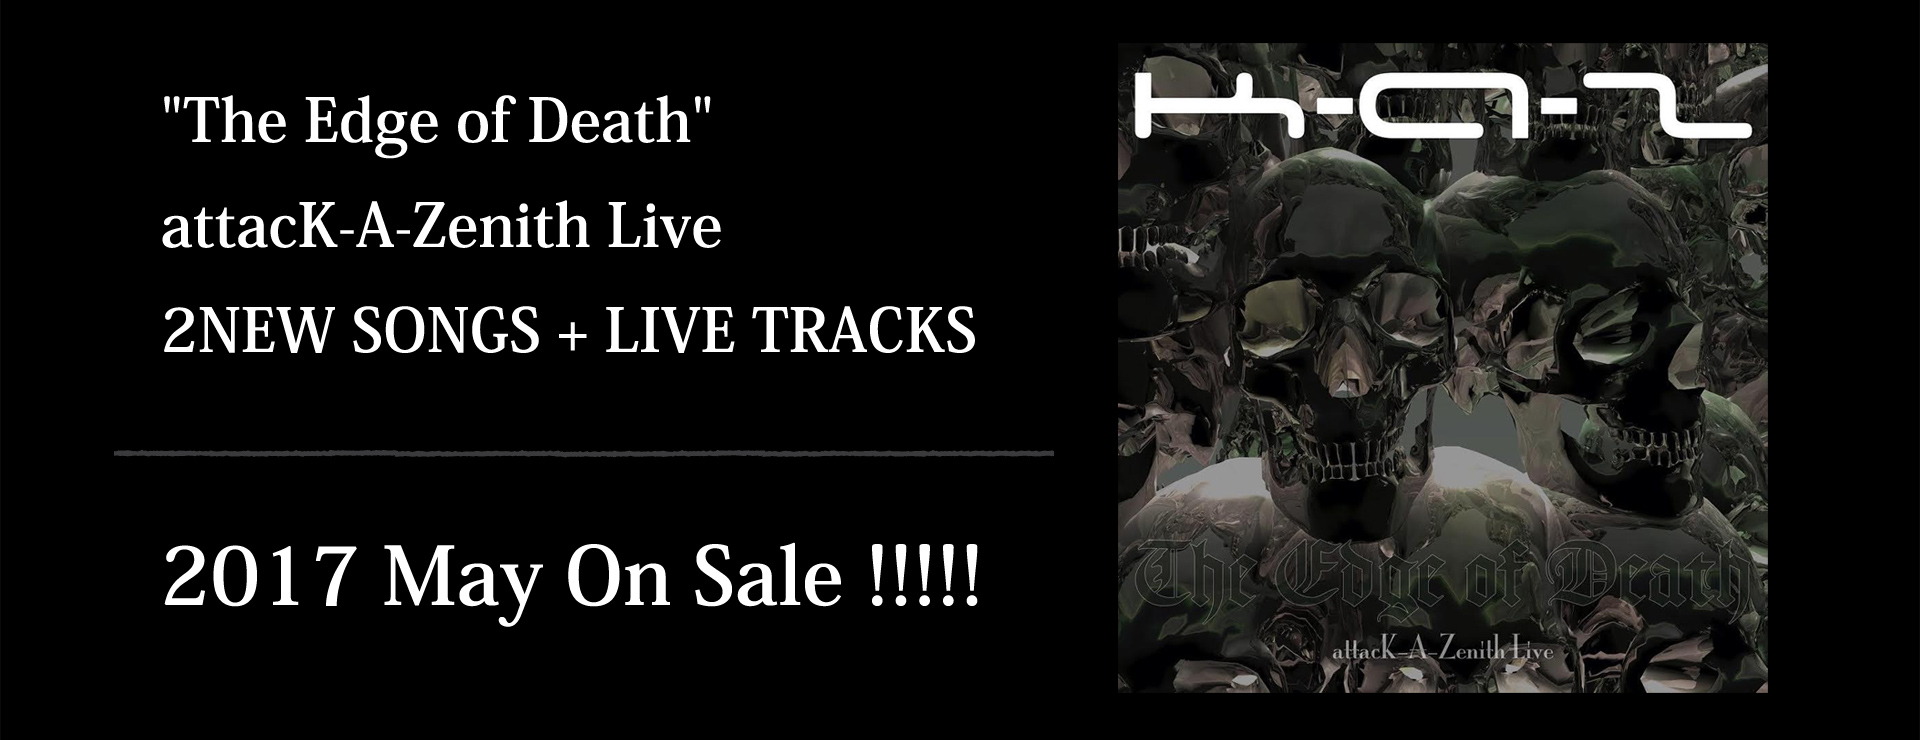 The Edge of Death -attacK-A-Zenith Live- (CD)